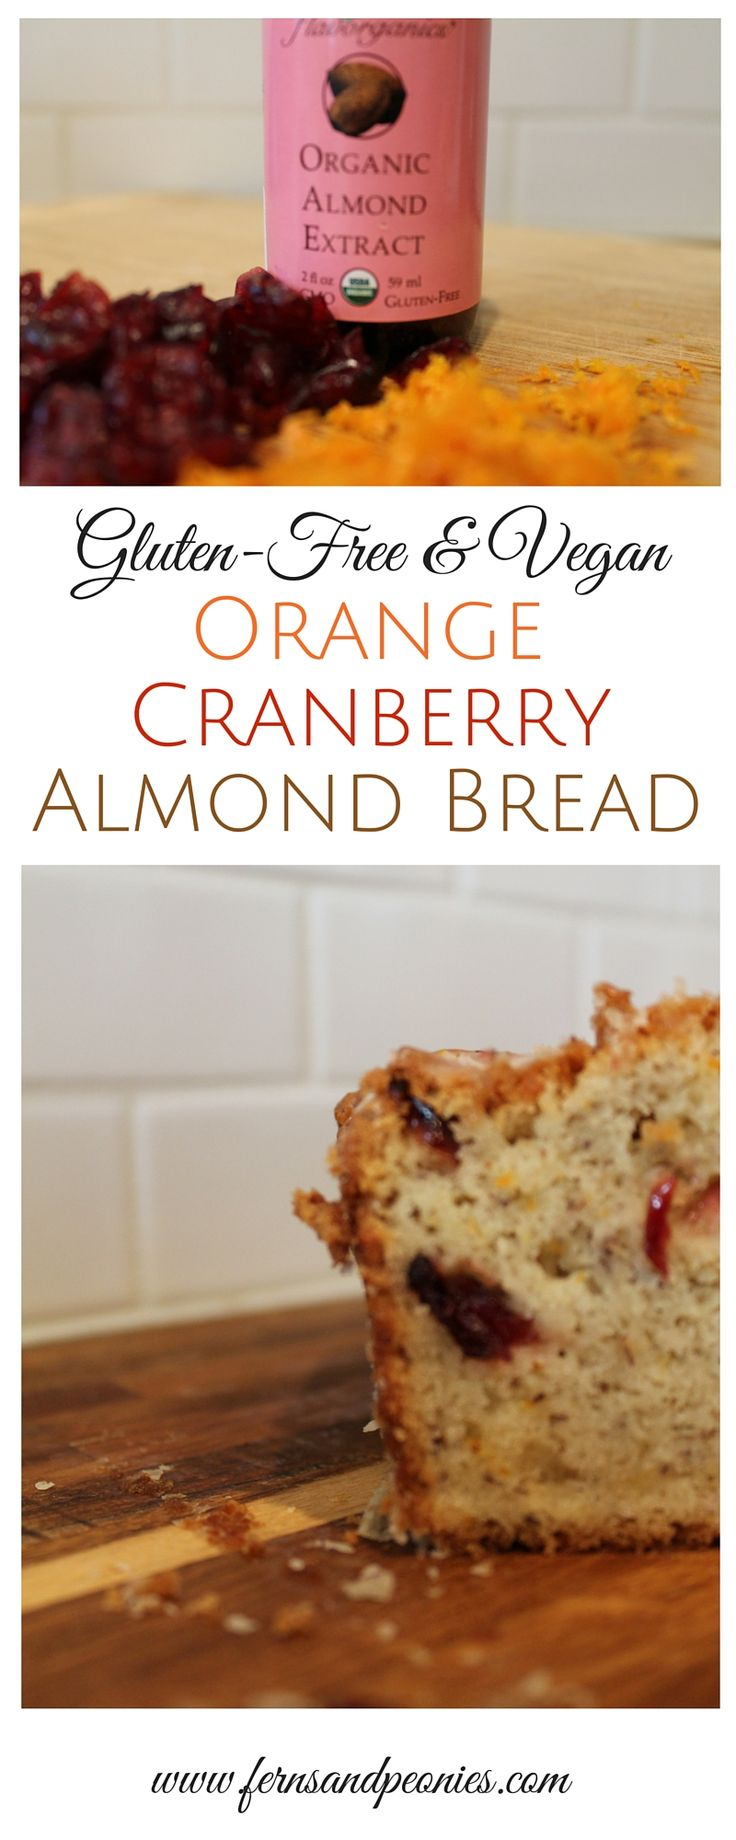 ... Recipes on Pinterest | Carrot cakes, Grain free and Overnight oats